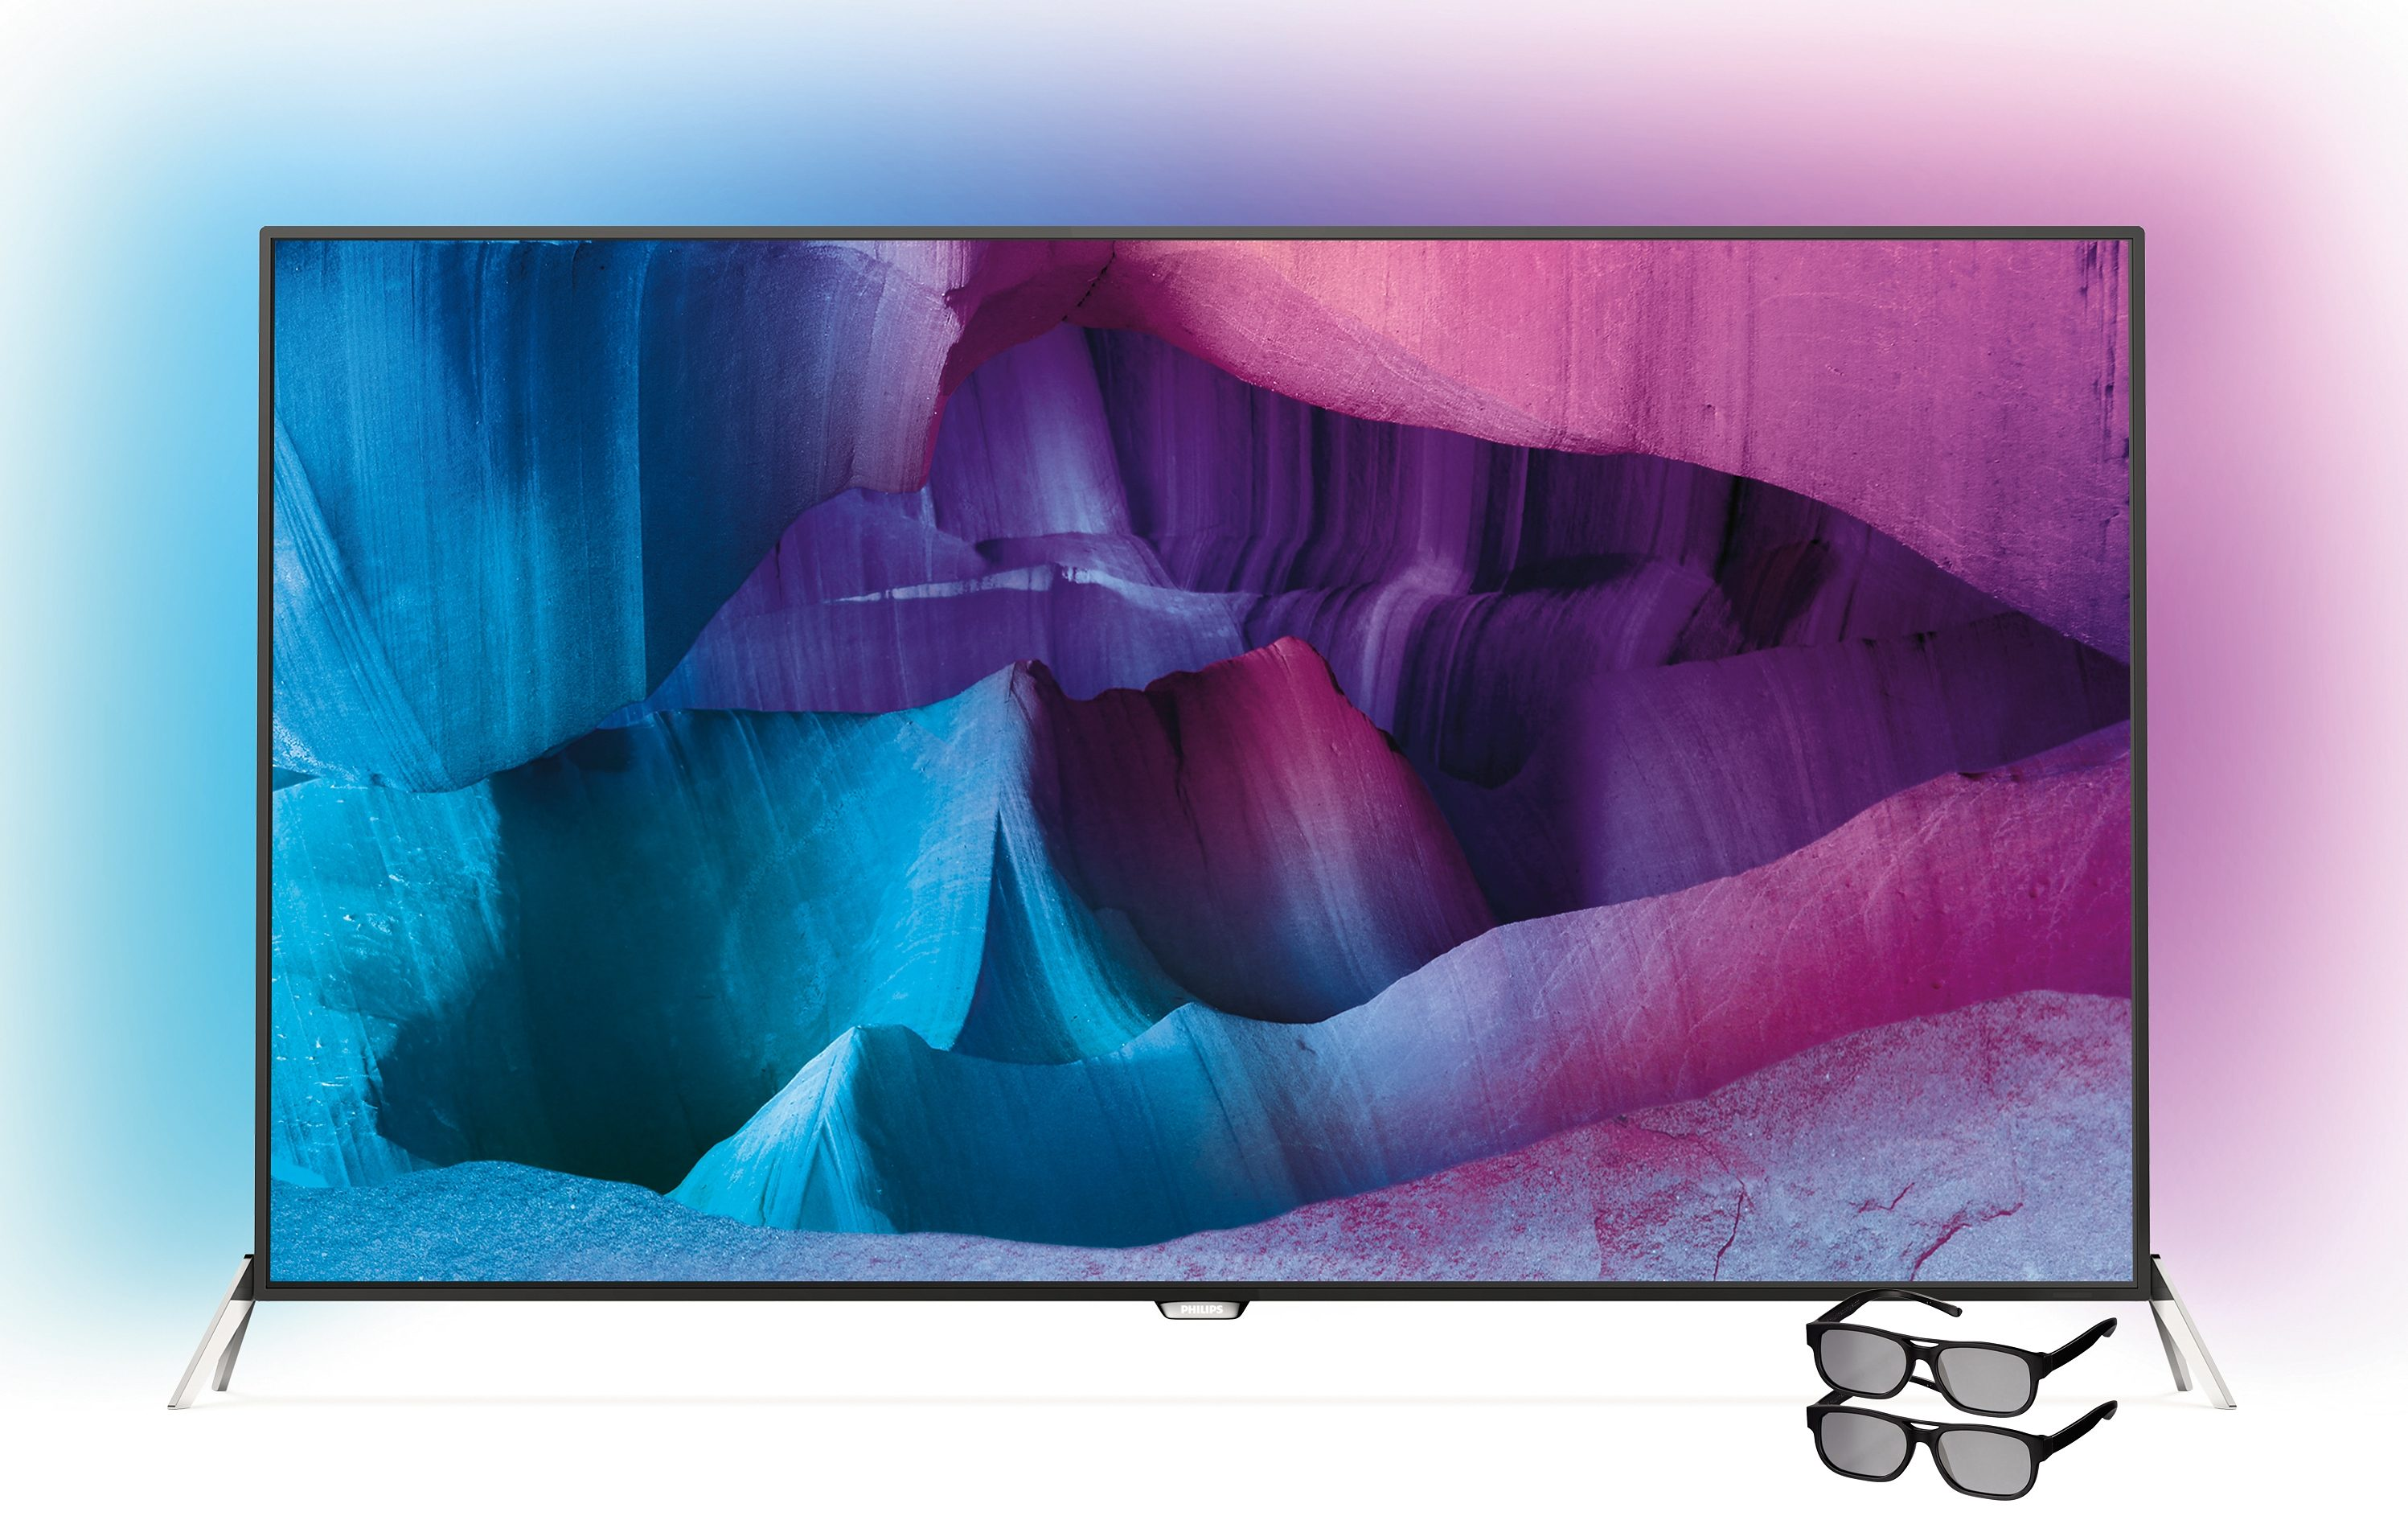 Philips 48PUS7600, 121 cm (48 Zoll), 2160p (4K Ultra HD) Ambilight LED Fernseher